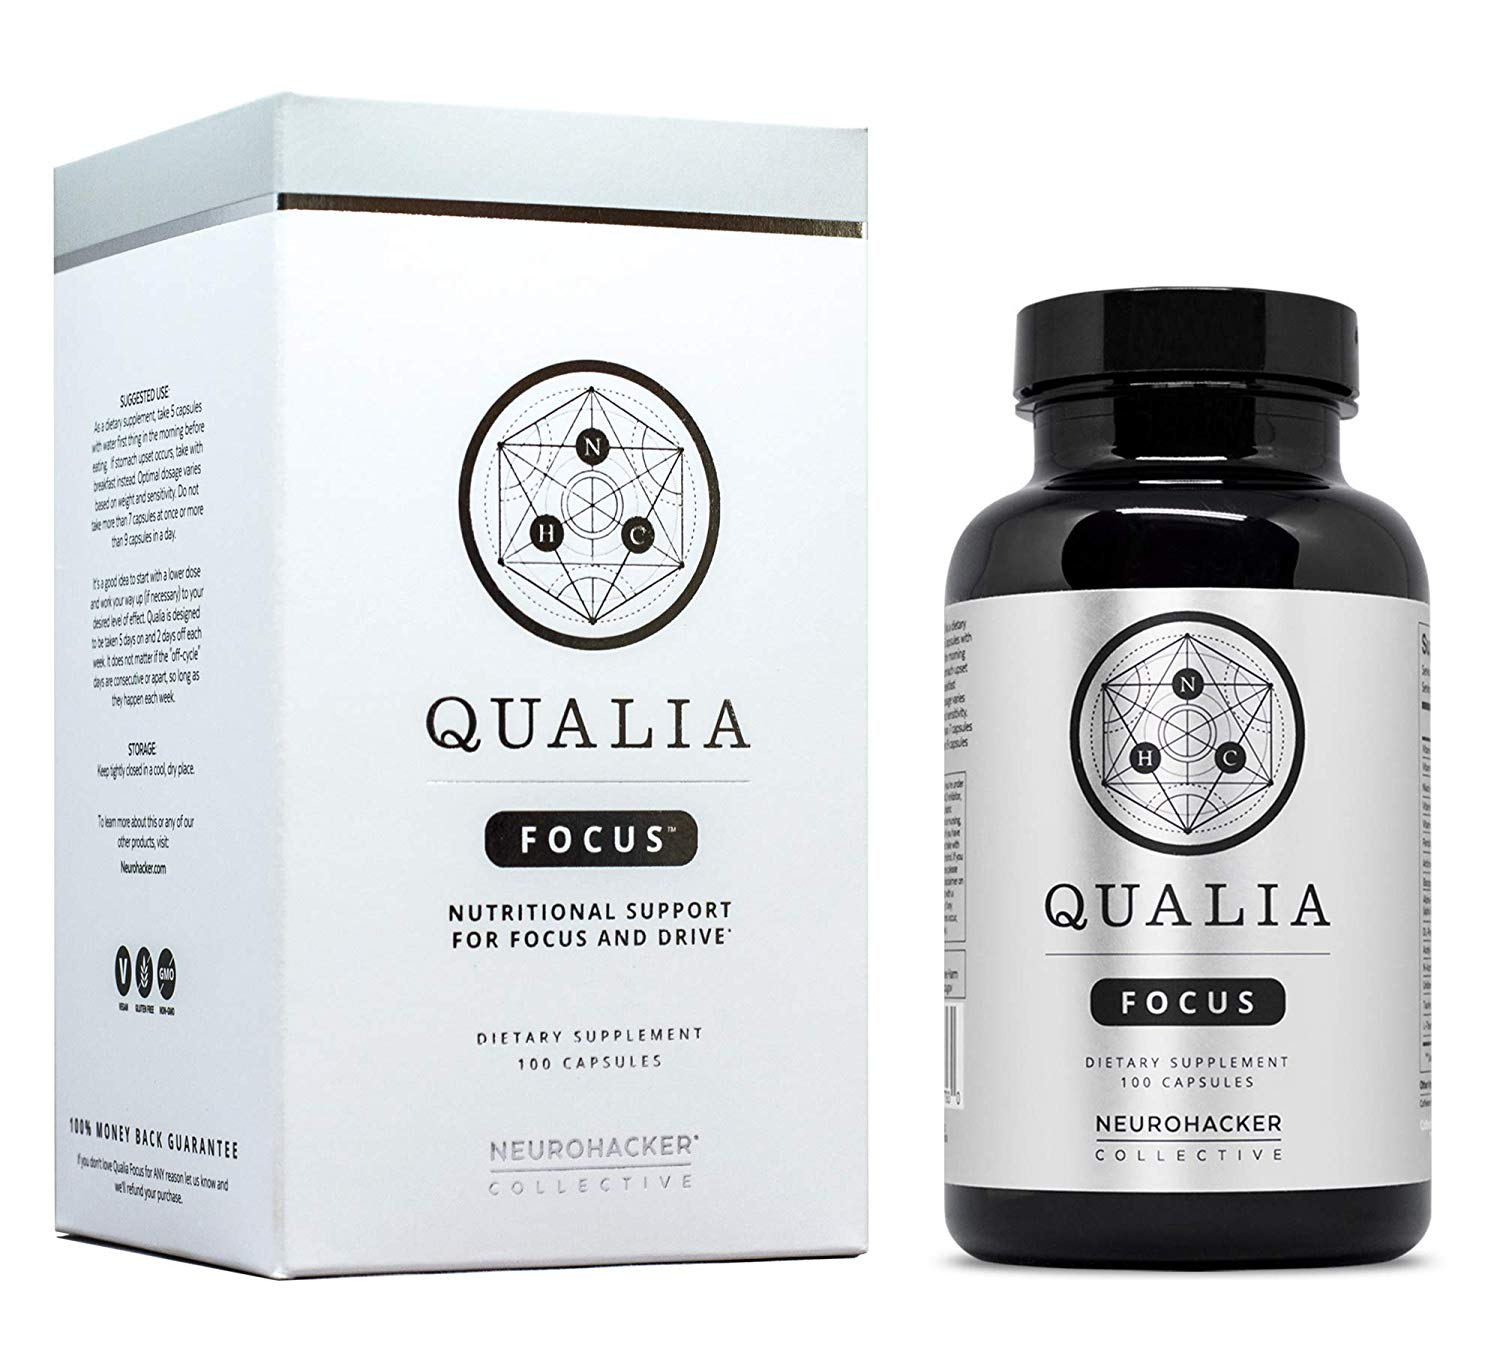 Qualia Focus Review: The Science Behind This Nootropic